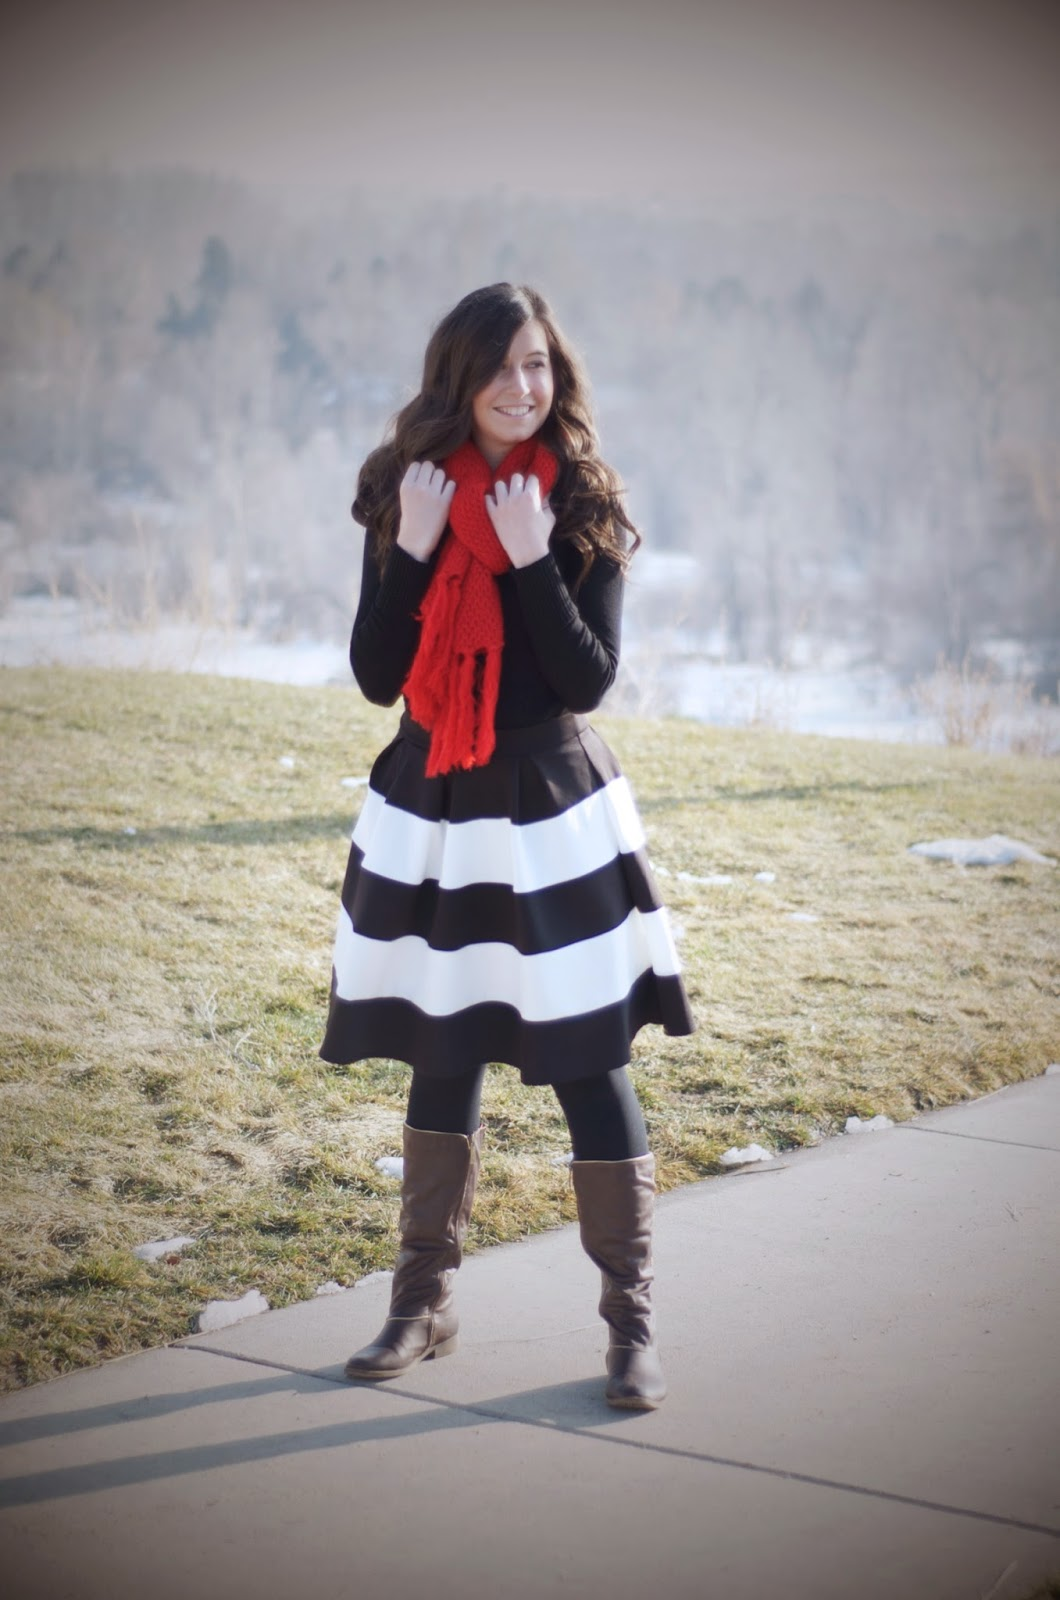 windsor store, make me chic, pop of red, downeast basics, flare skirt, black and white, black and red,